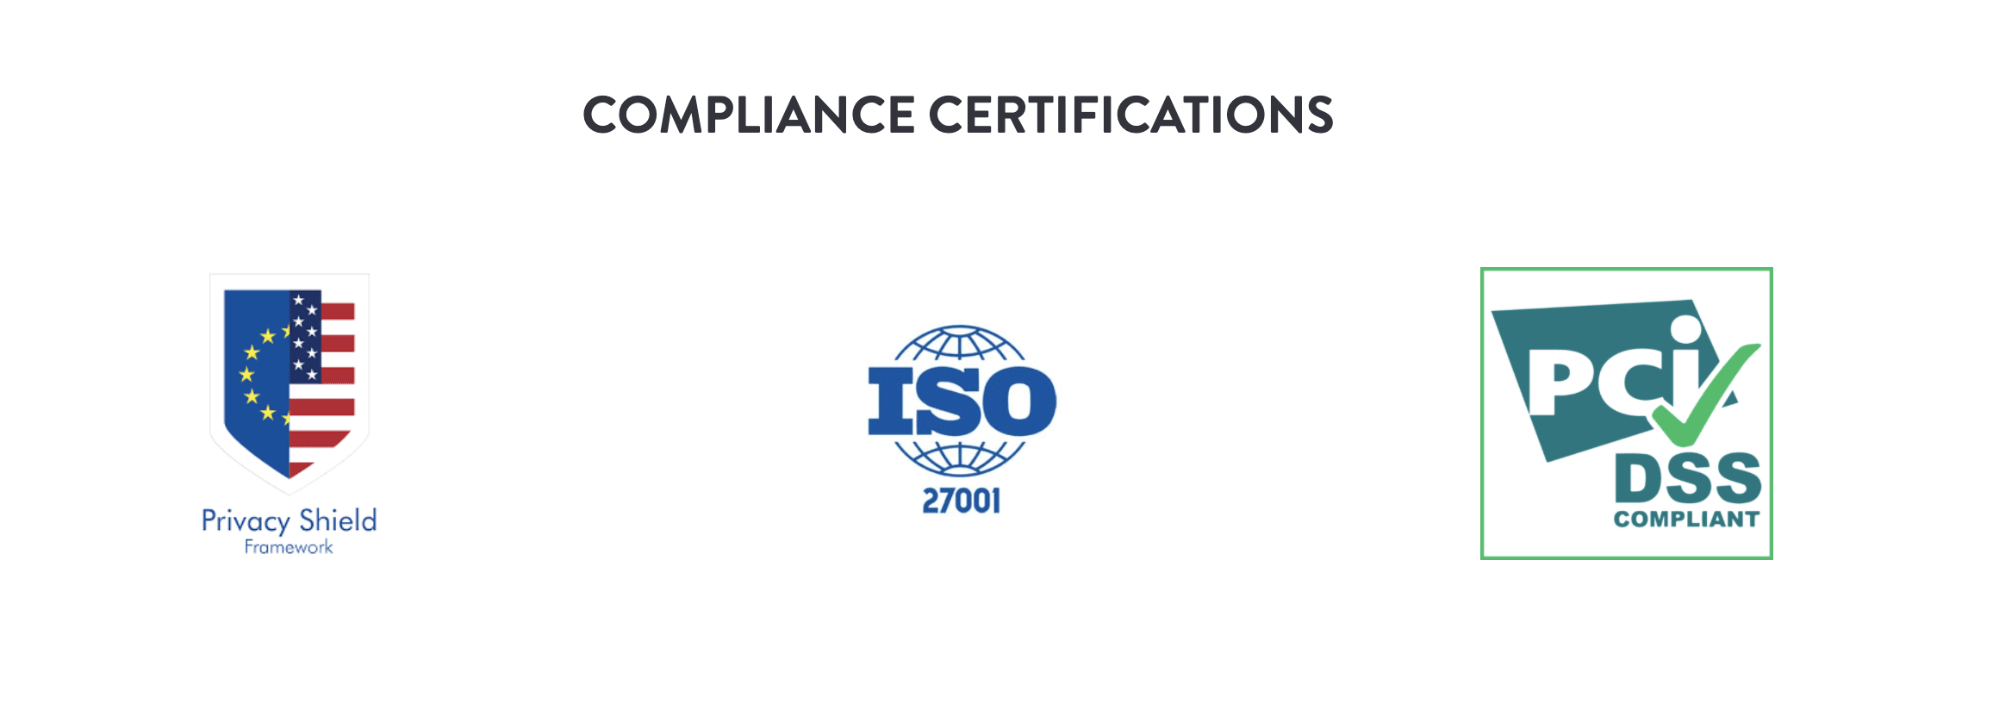 data compliance certifications - event trends